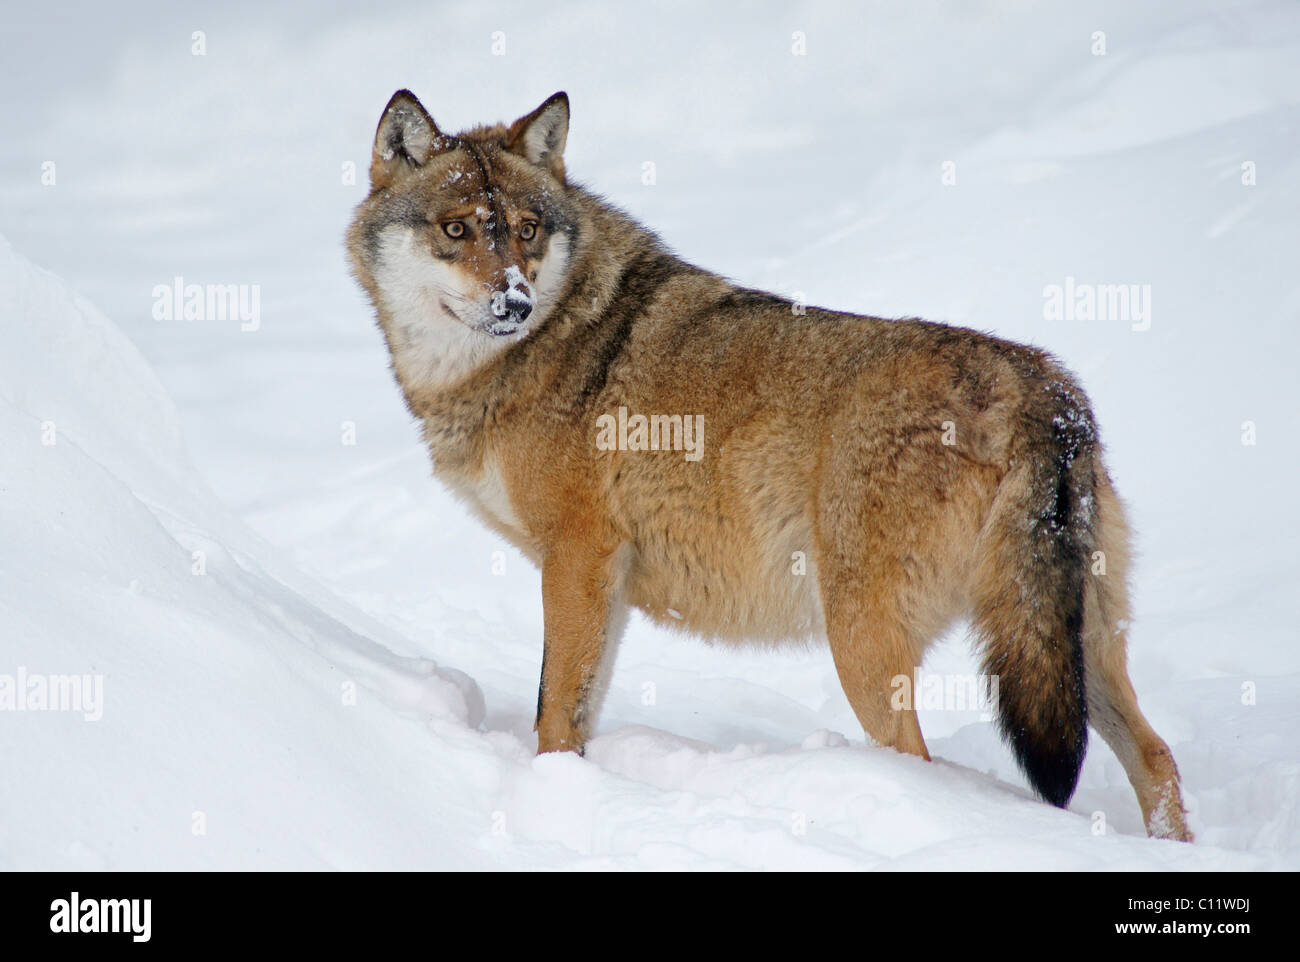 Wolf (Canis lupus) in snow - Stock Image